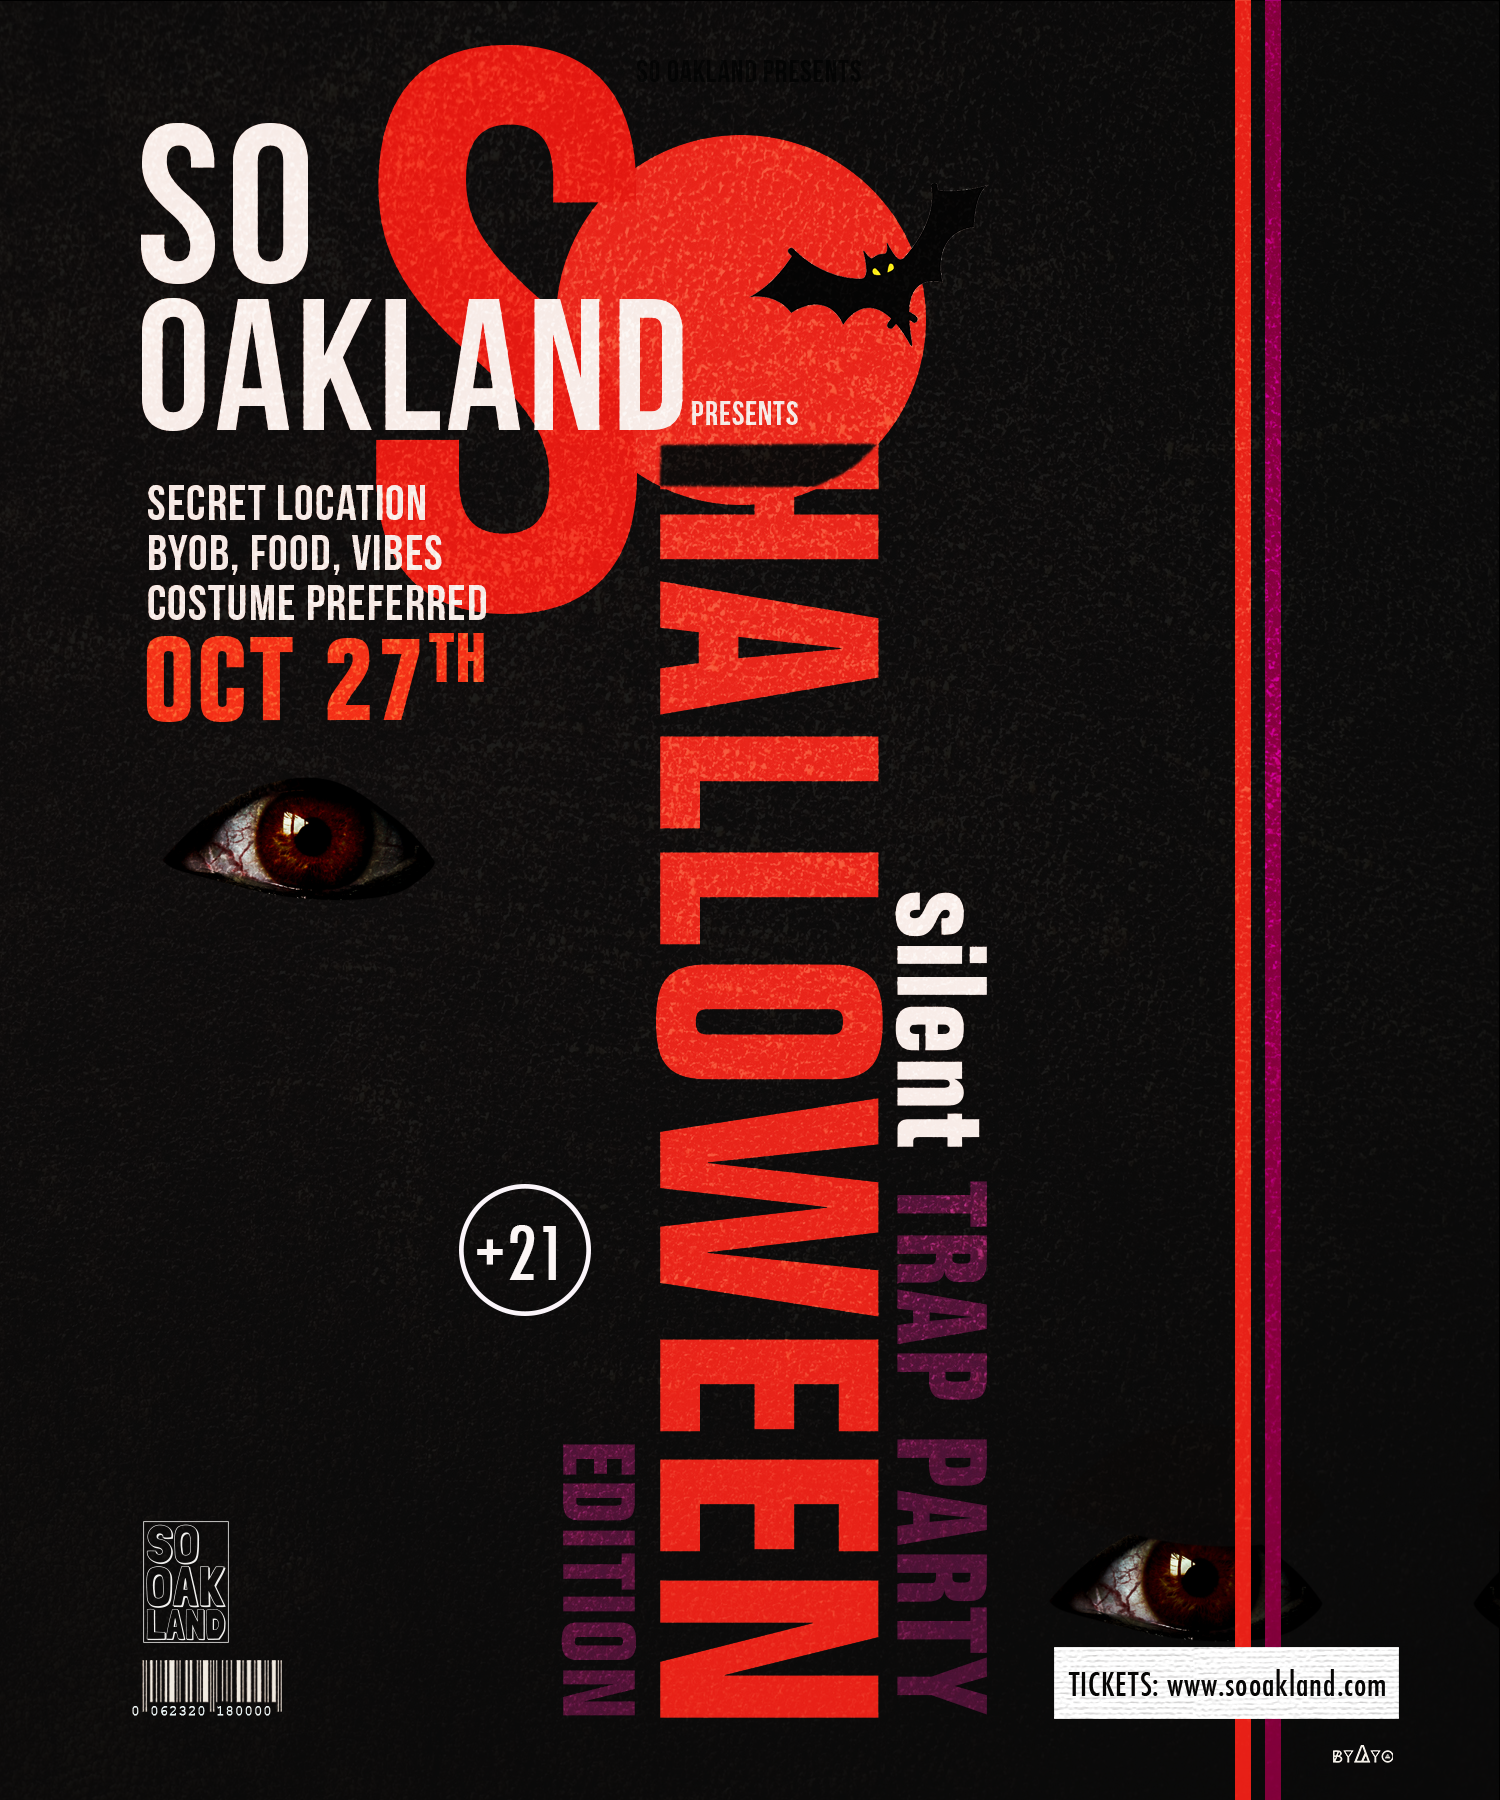 COSTUMES PREFERRED       AGE: 21 AND UP      Location  OAKLAND (SECRET LOCATION)  Doors open at 8pm    - Parking  : Parking will BE AVAILABLE FOR STREET PARKING ONLY.     Gate : You must have ticket to enter , NO TICKETS WILL BE SOLD AT DOOR   ALCOHOL : ALL ALCOHOL MUST BE SEALED UNTIL YOU ARE IN DESIGNATED AREA OF EVENT, NO OPEN CONTAINERS UPON ENTERING THE EVENT IS ALLOWED. BYOB  SMOKING: IS OKAY   SECURITY : Will be present     UBER AND LYFT HIGHLY SUGGESTED (DO NOT DRINK AND DRIVE)    You can bring   - BYOB(SEALED)